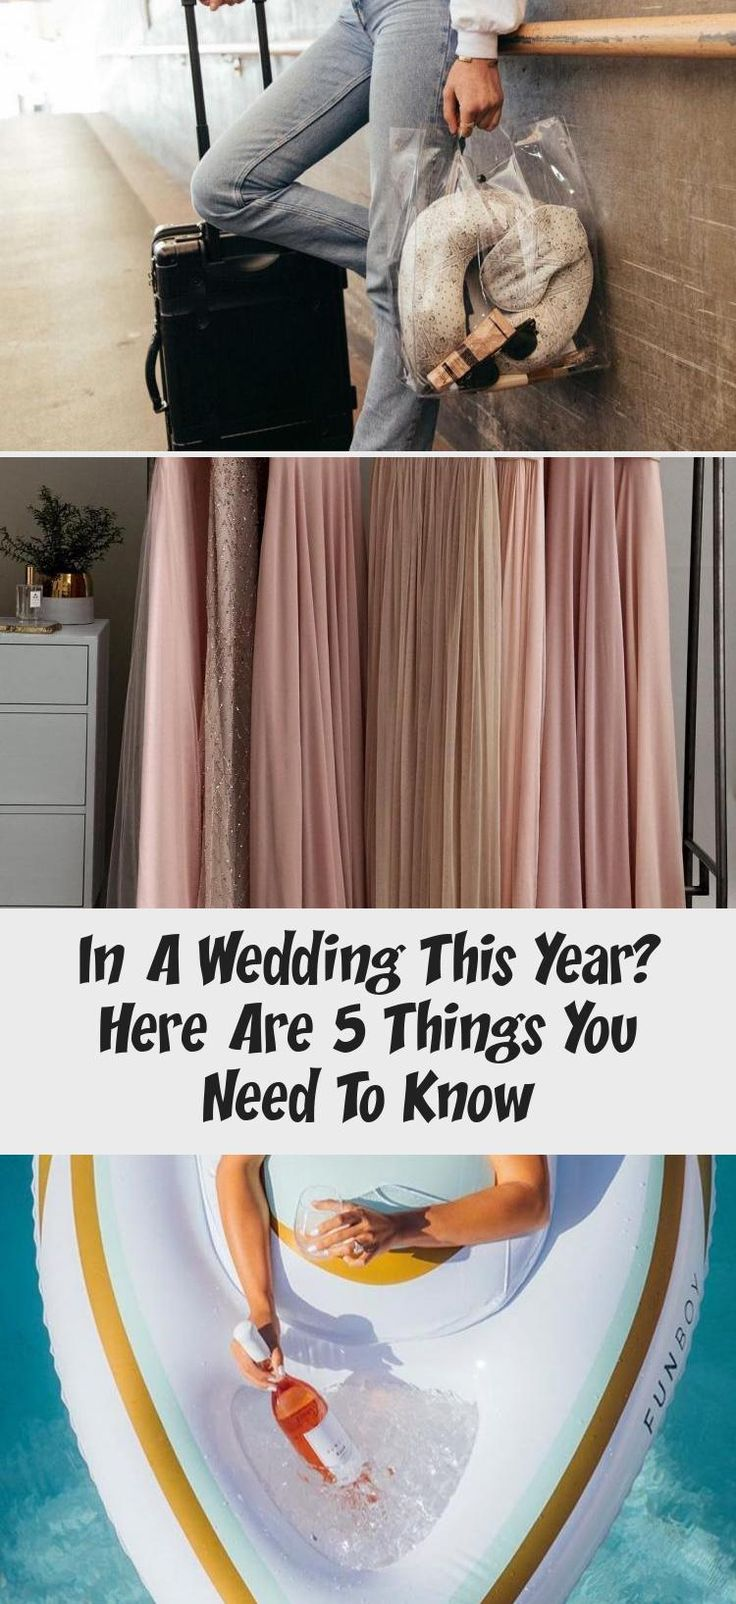 In a Wedding This Year? Here Are 5 Things You Need to Know | The Everygirl